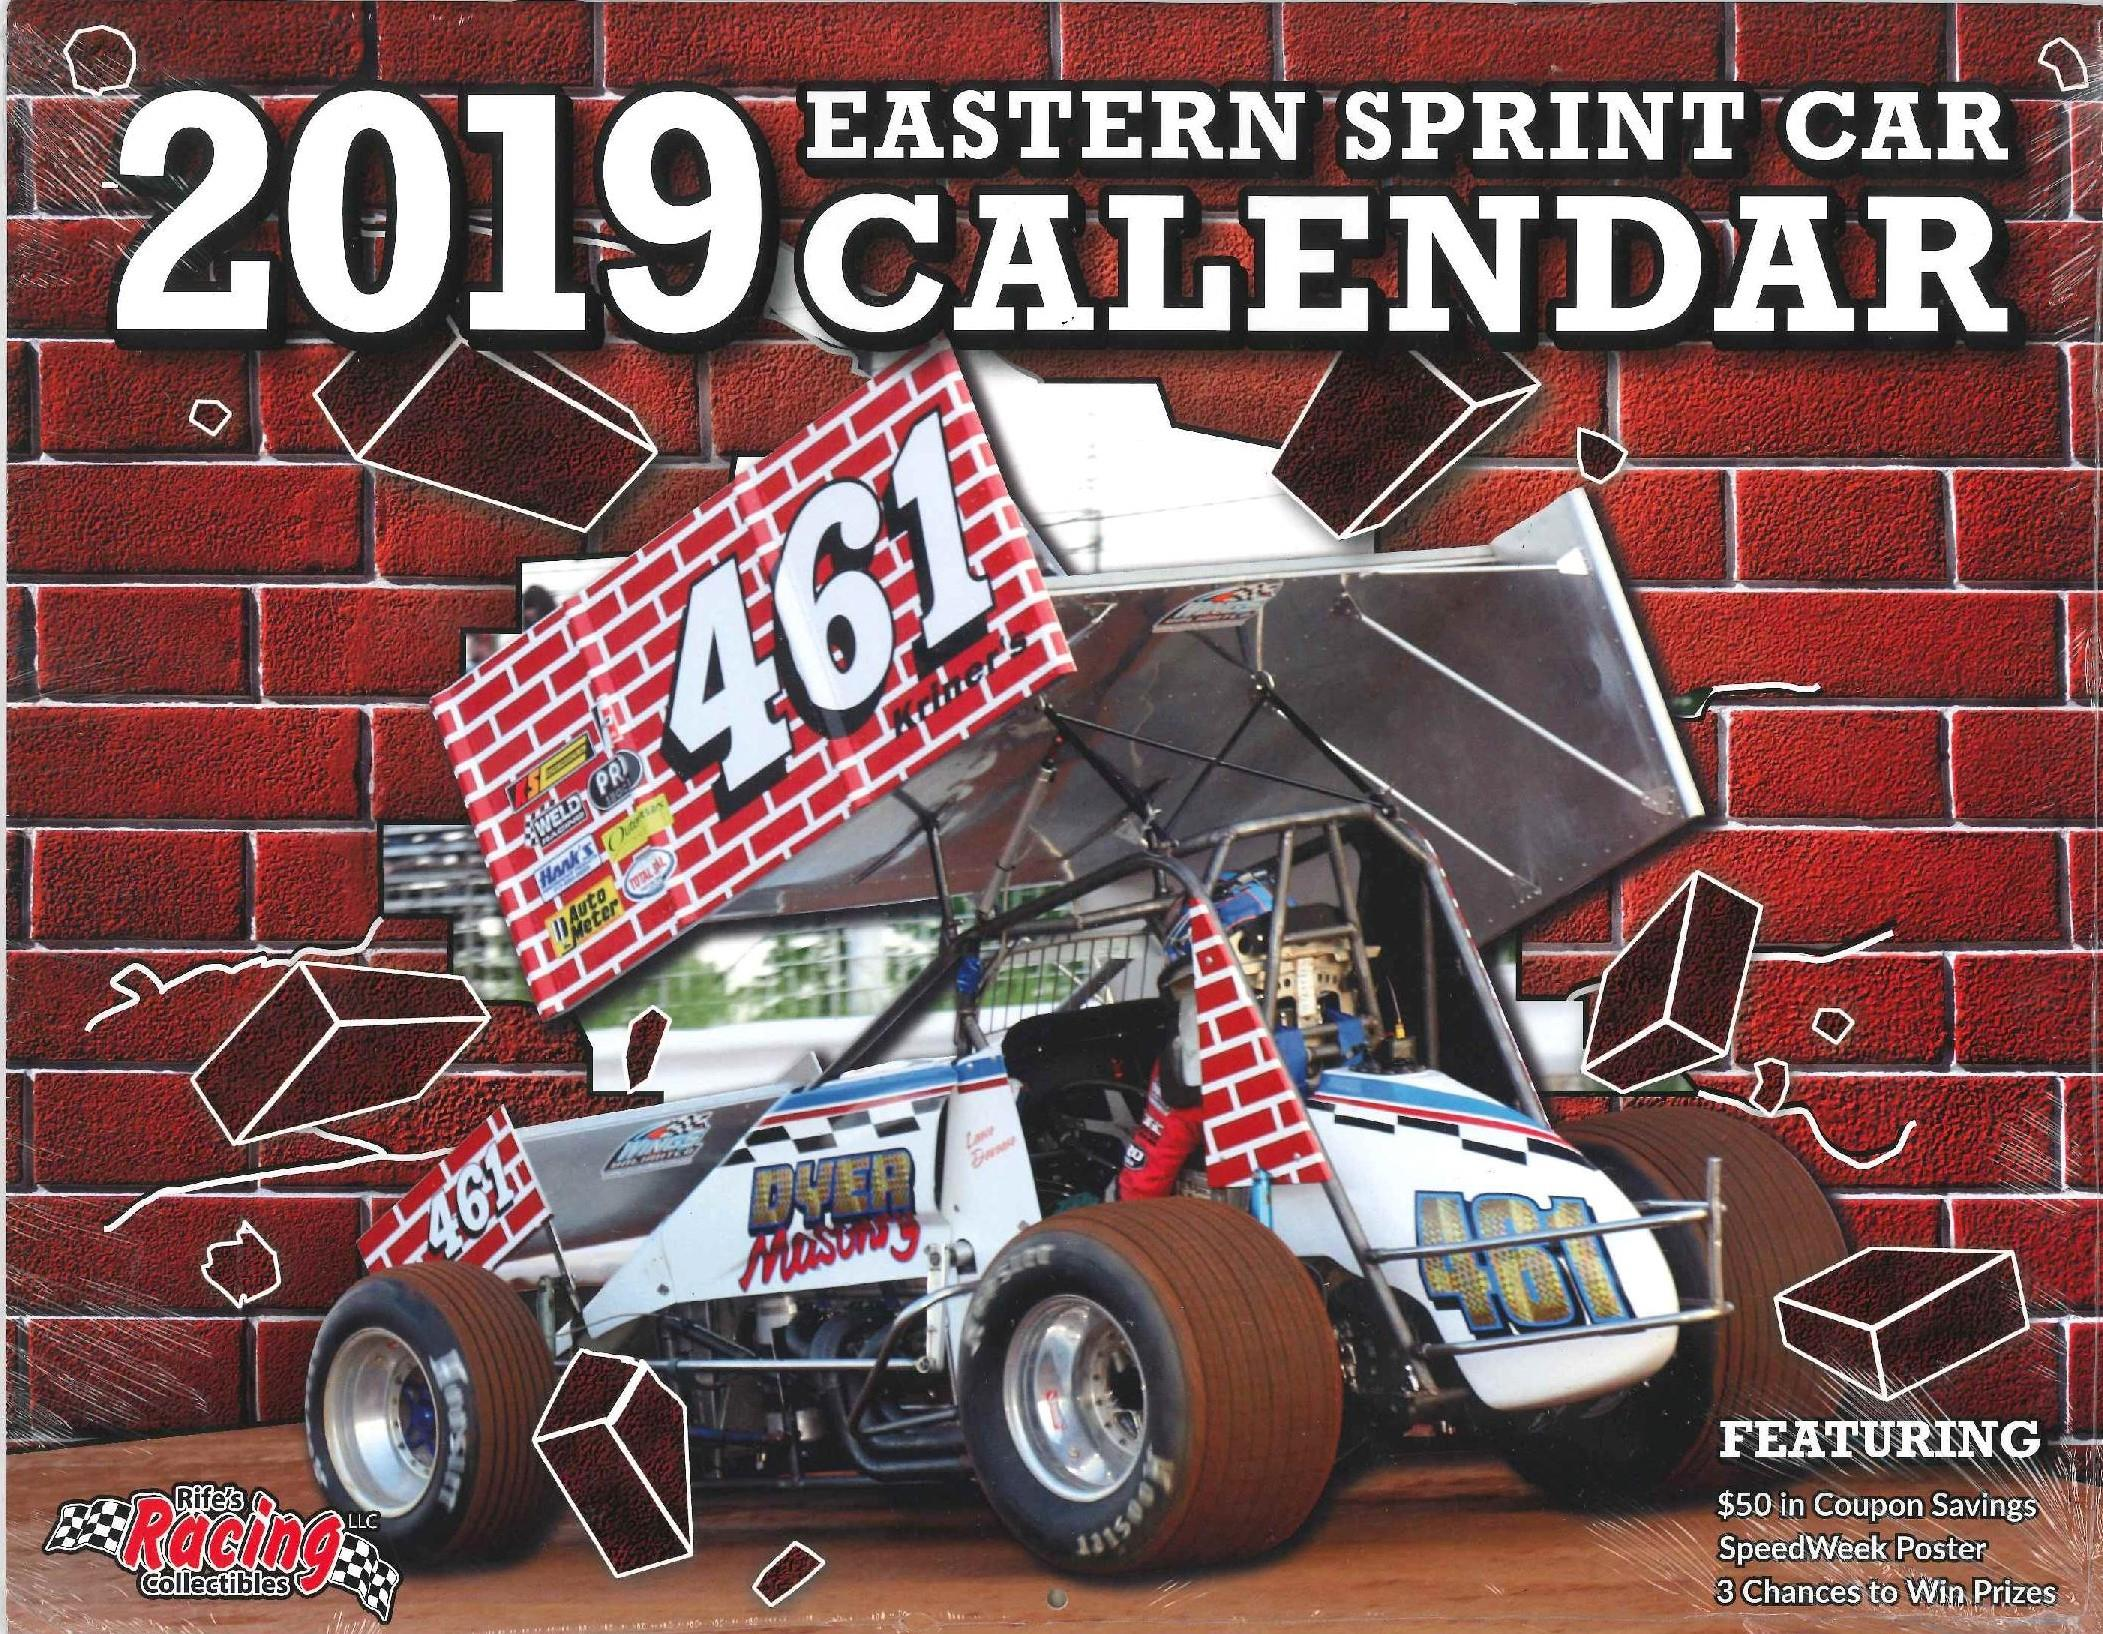 2019 Eastern Sprint Car Calendar